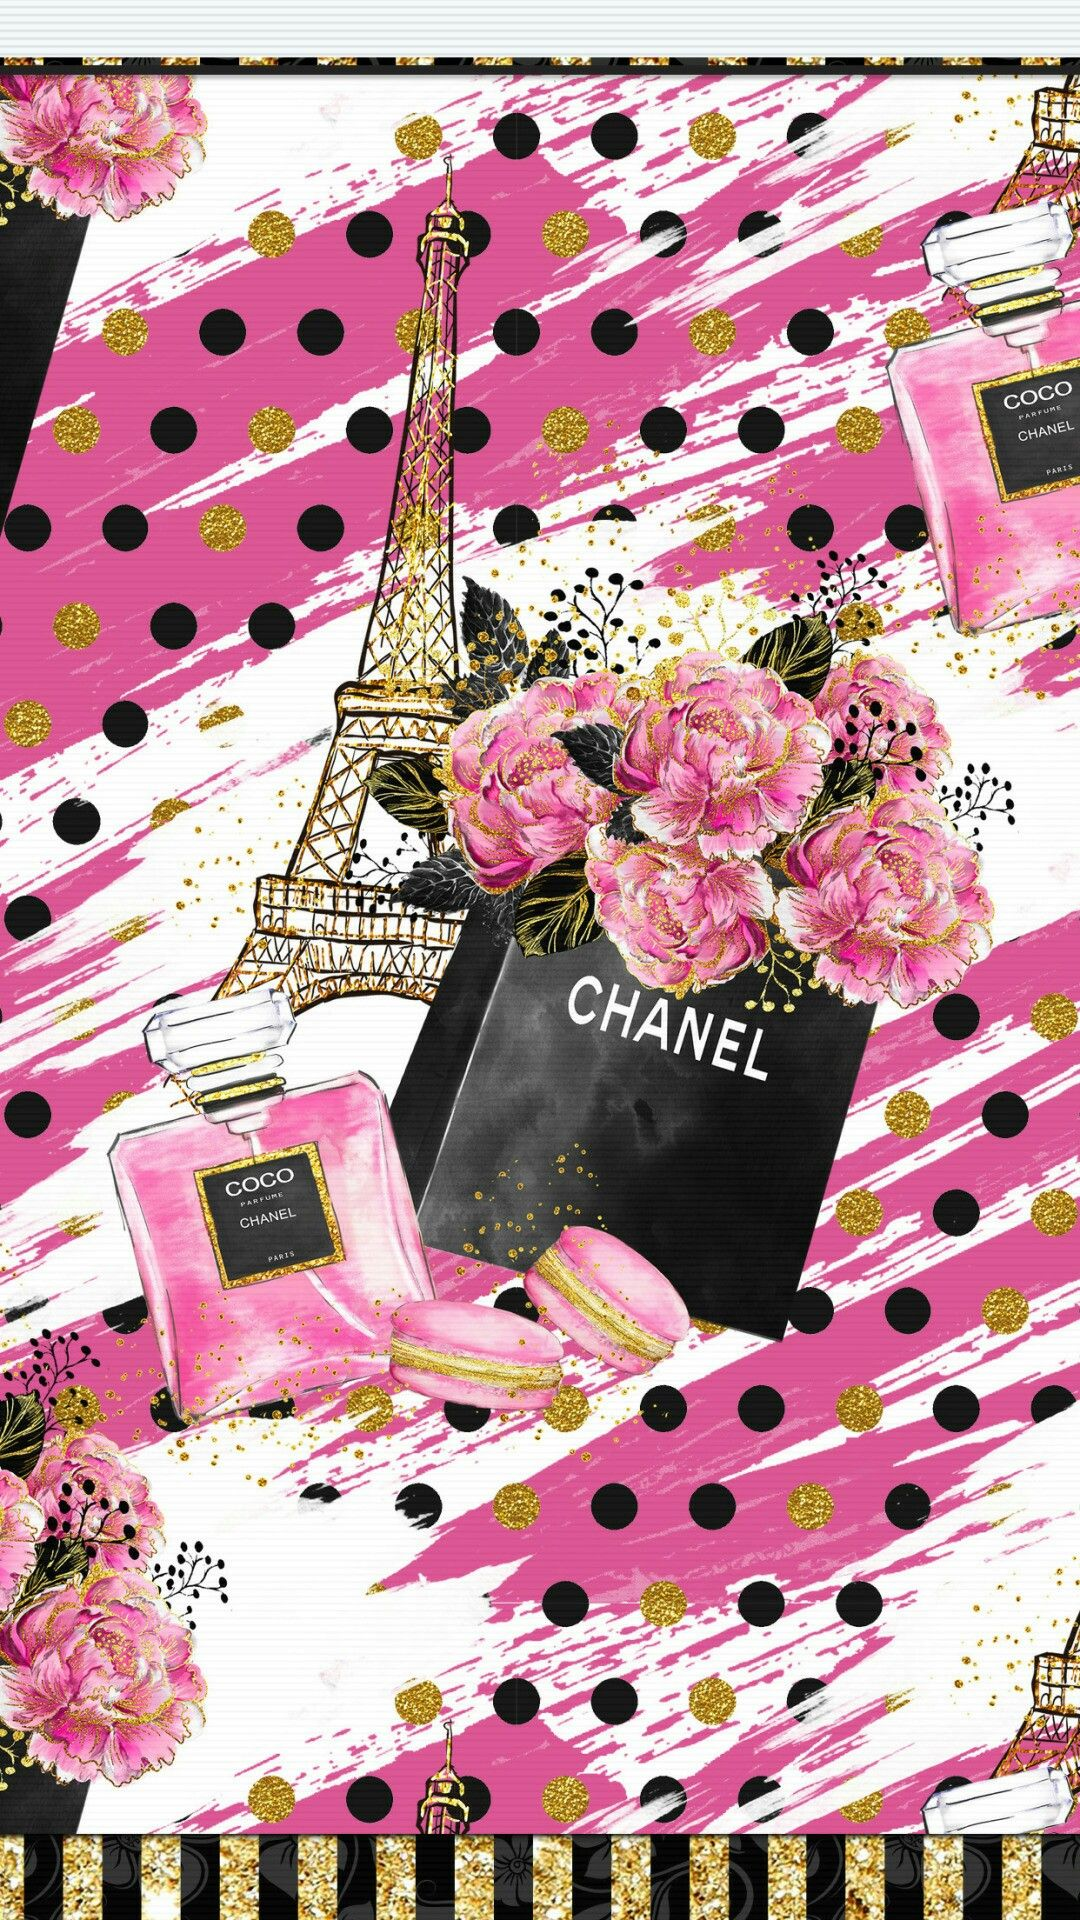 iPhone Wall tjn Chanel wallpapers, Cute wallpaper for